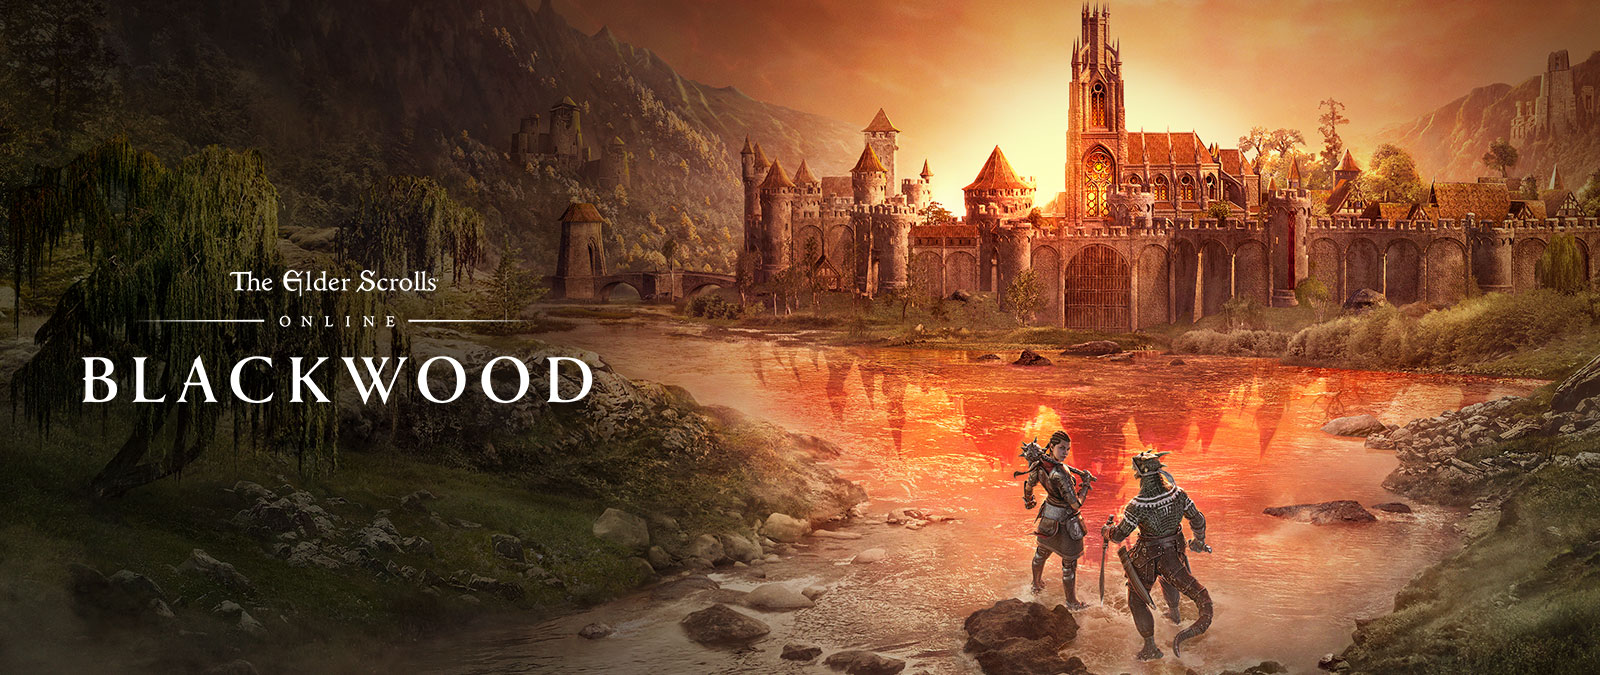 The Elder Scrolls Online: Blackwood. Two characters in armour making their way towards a town at sunset